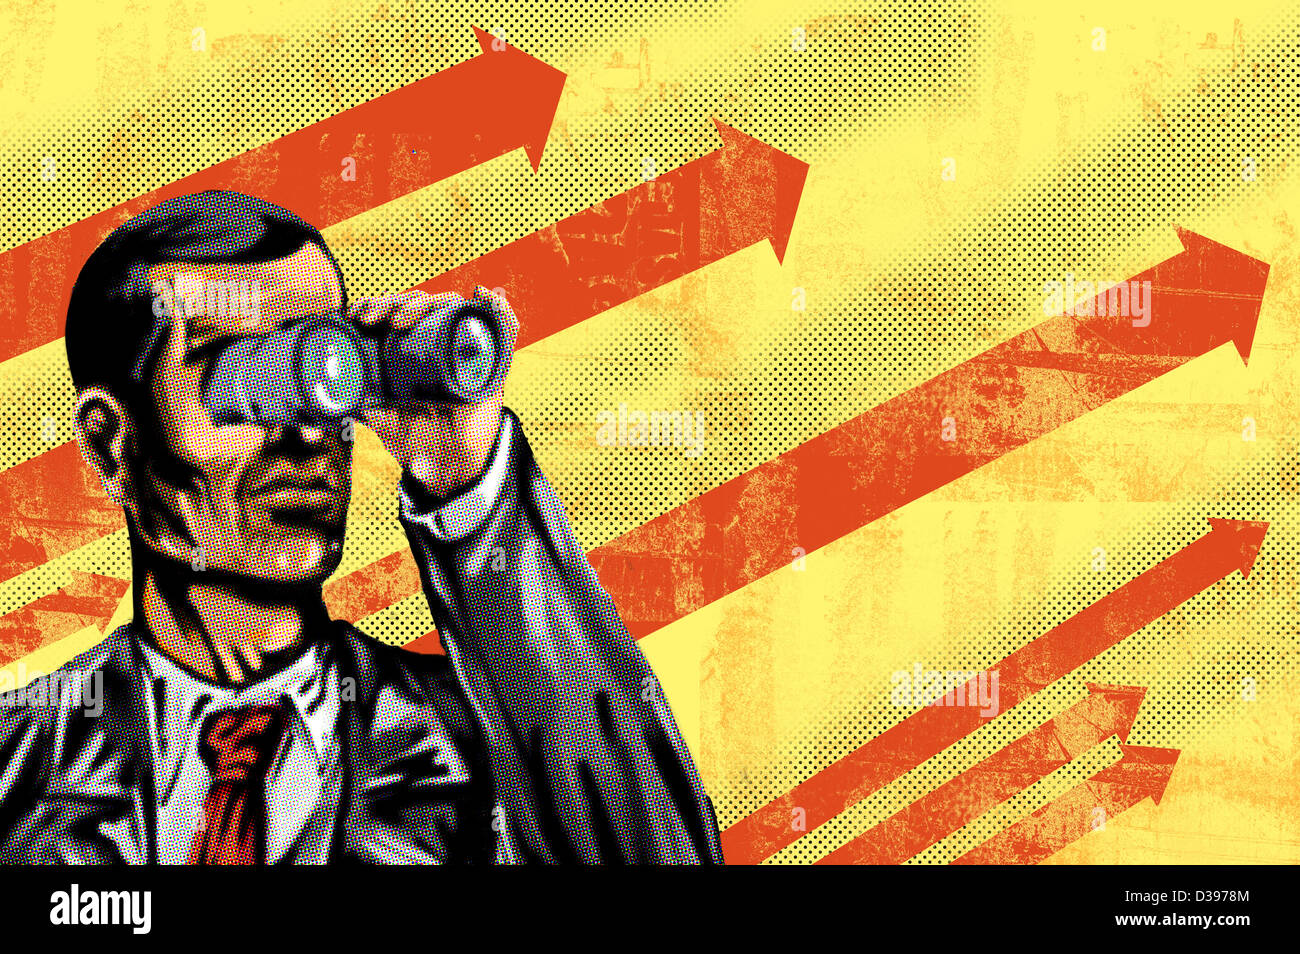 Conceptual illustration of man with binoculars and arrow sign in background depicting goal oriented businessman - Stock Image